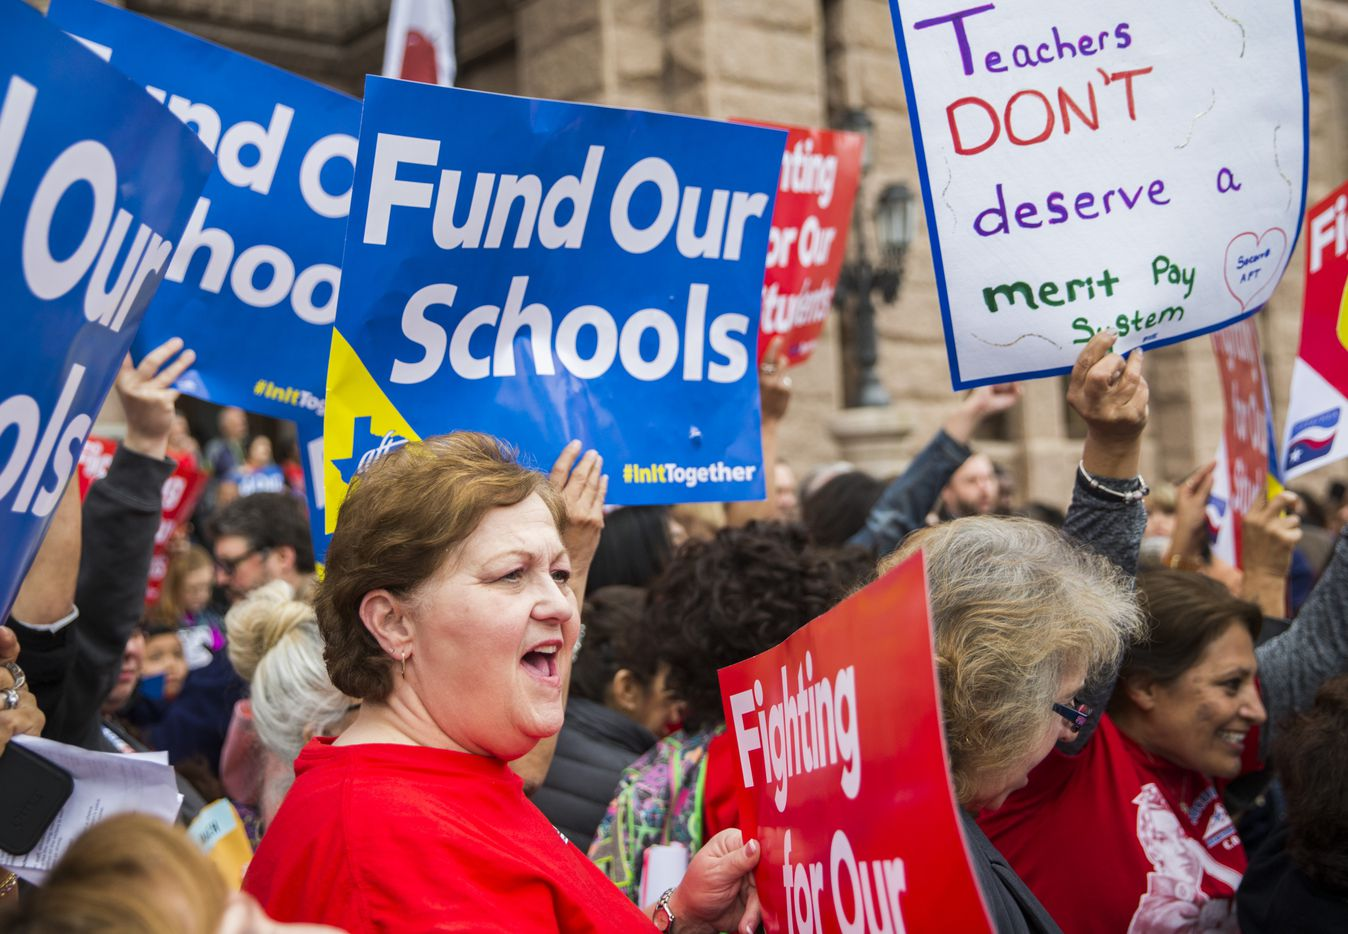 Rena Honea, president of the Dallas Alliance of American Federation of Teachers union, chants during the Texas Public Education Rally on Monday, March 11, 2019 at the Texas capitol in Austin. Teachers pushed for school finance reform and pay raises.